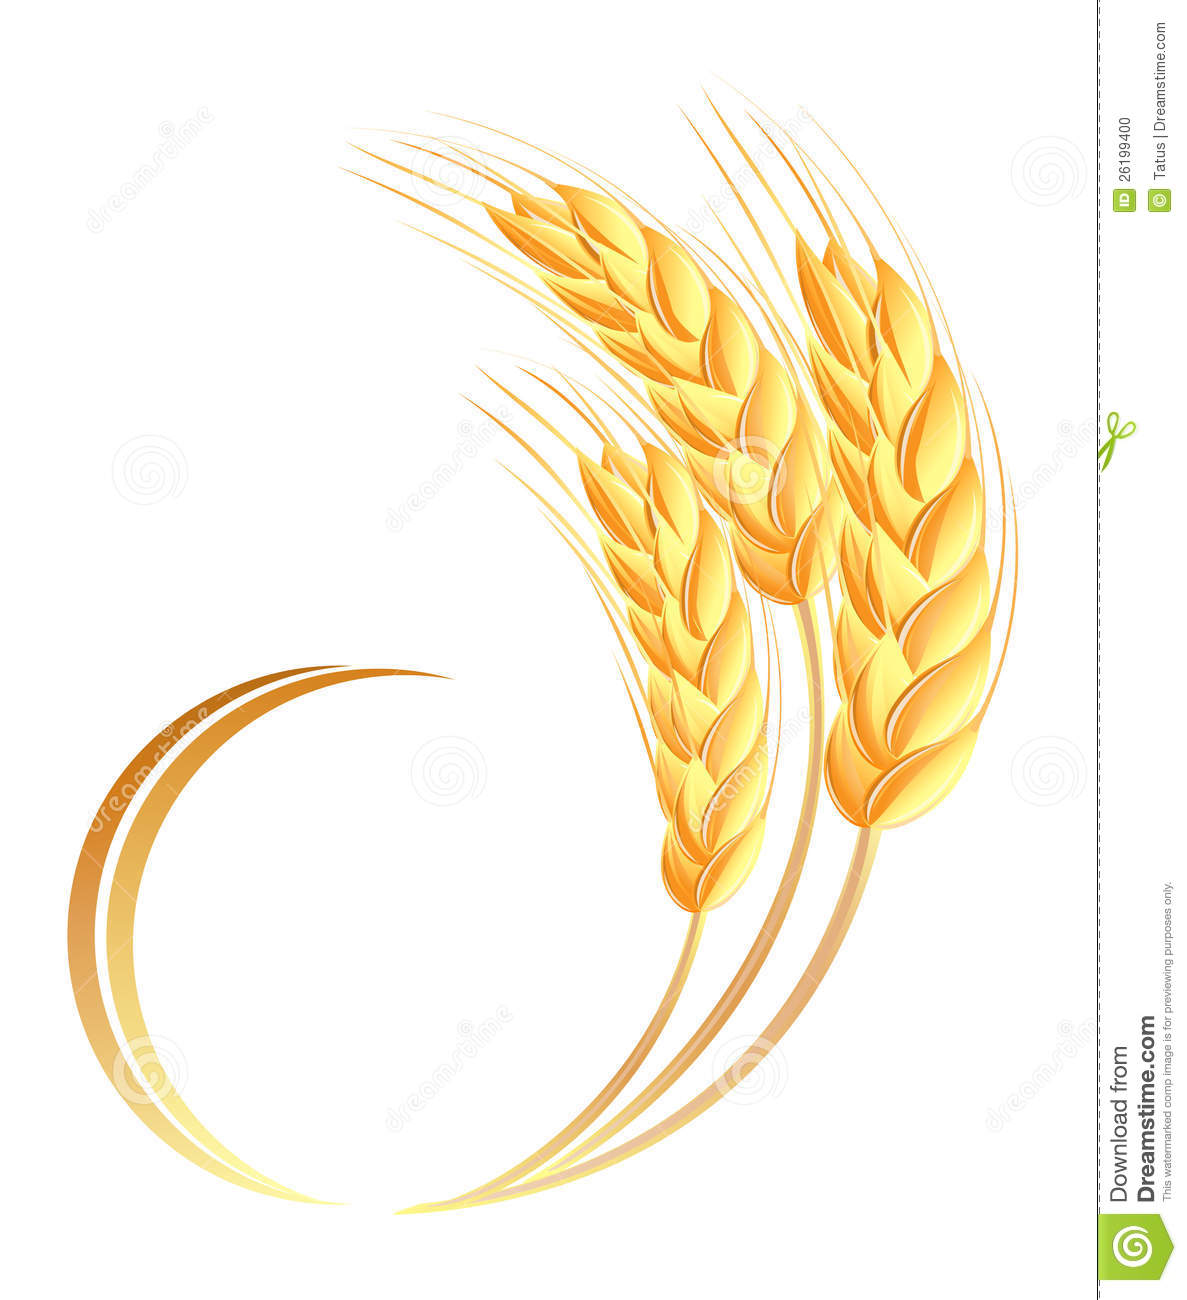 Wheat Ears Icon Stock Photo - Image: 26199400